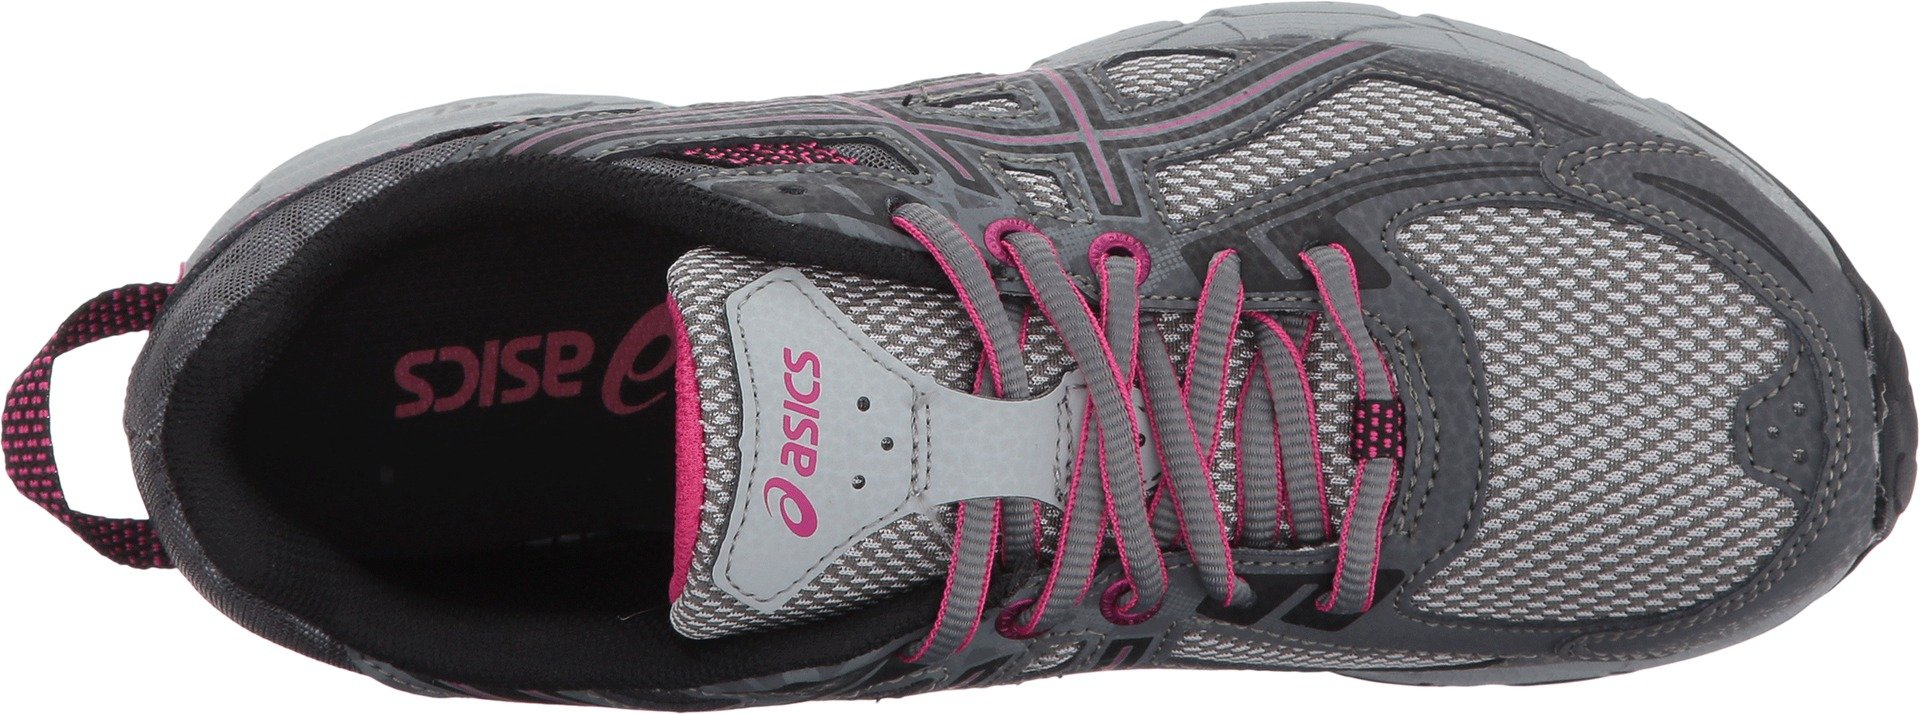 ASICS Women's Gel-Venture 6 Running-Shoes,Carbon/Black/Pink Peacock,5 D US by ASICS (Image #2)